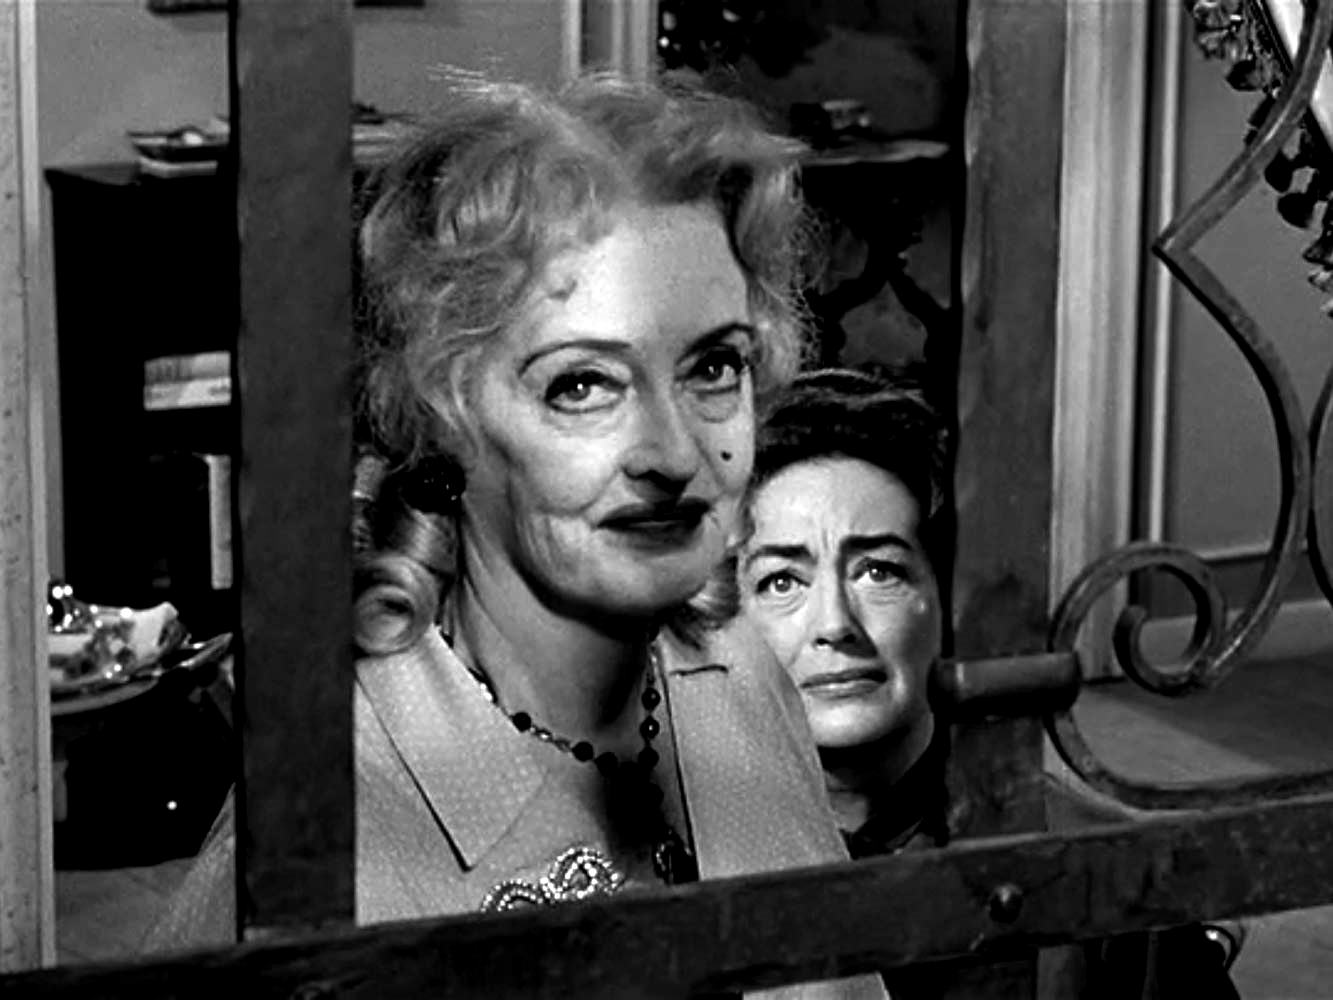 Jane (Bette Davsi) and Blanche (Joan Crawford) in What Ever Happened to Baby Jane? (1962)